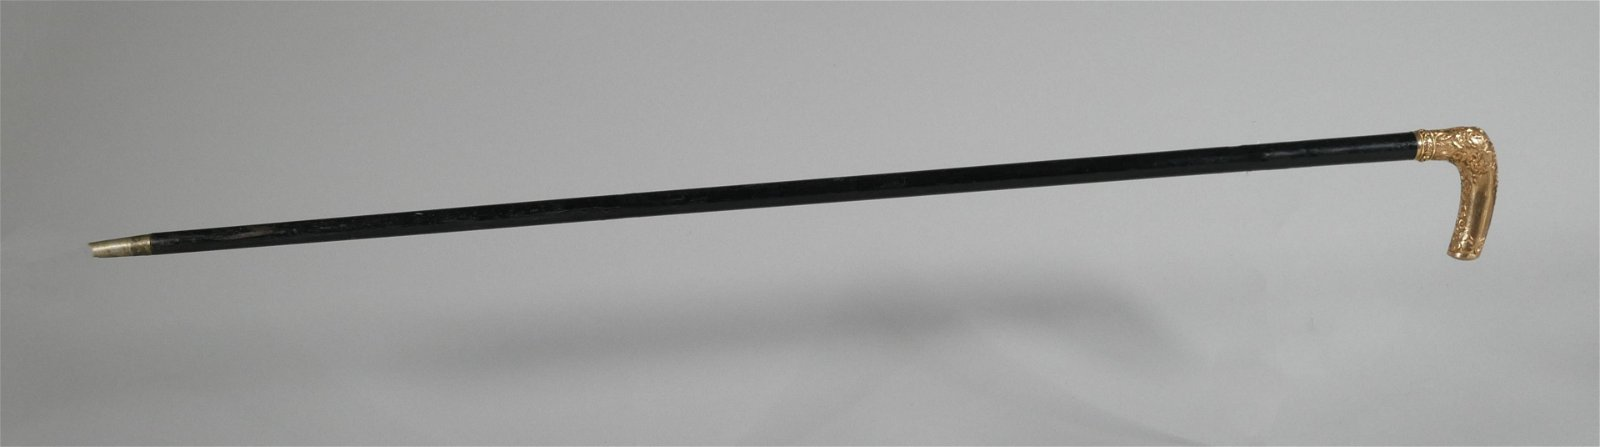 Walking Stick, Gold Plated Handle